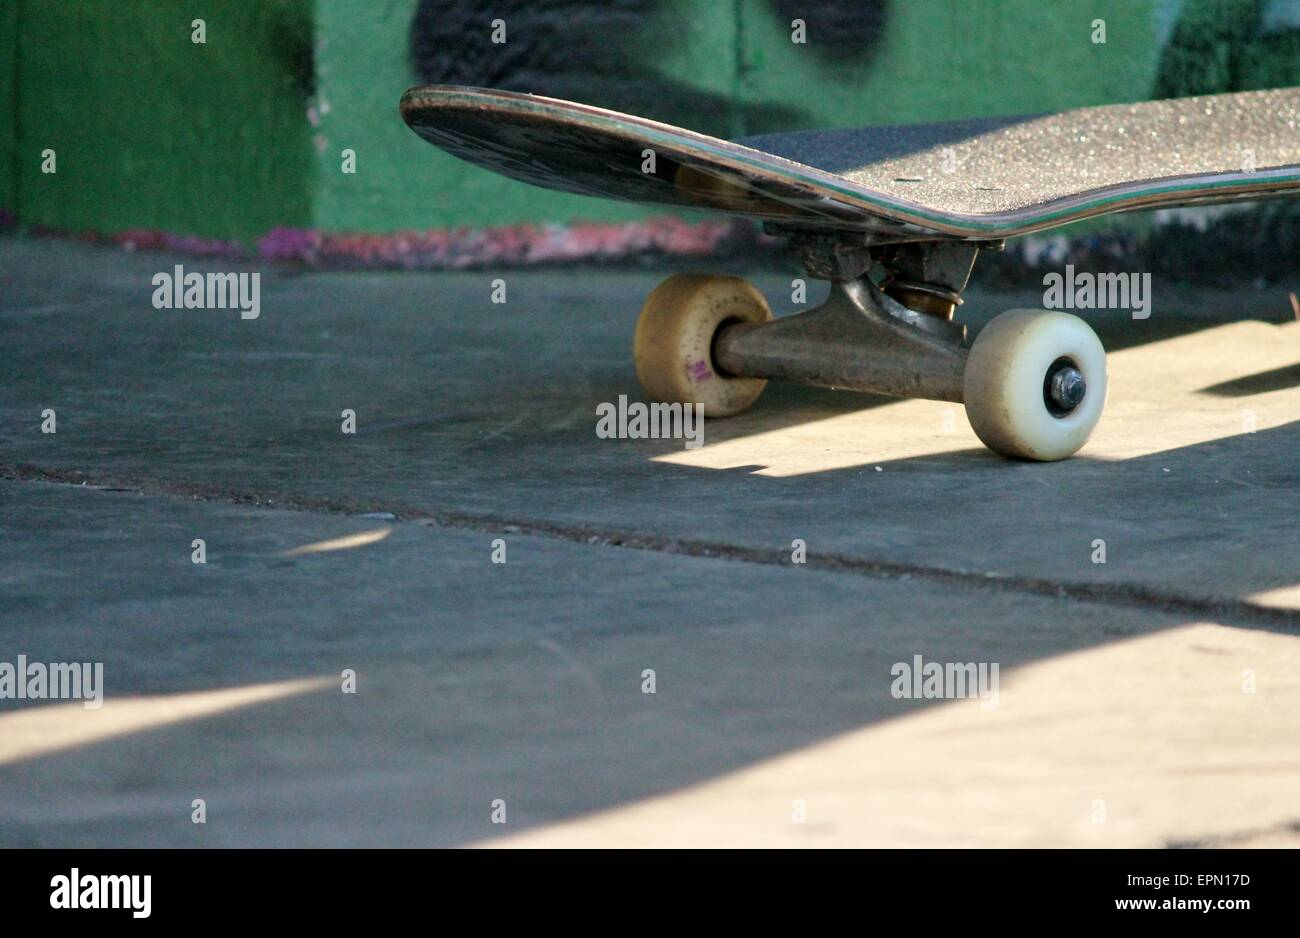 0ba7e1c975 Old used skateboard isolated on the ground. Shallow depth of field.  skateboard, skateboarding, wheels, retro, isolated, dirty,